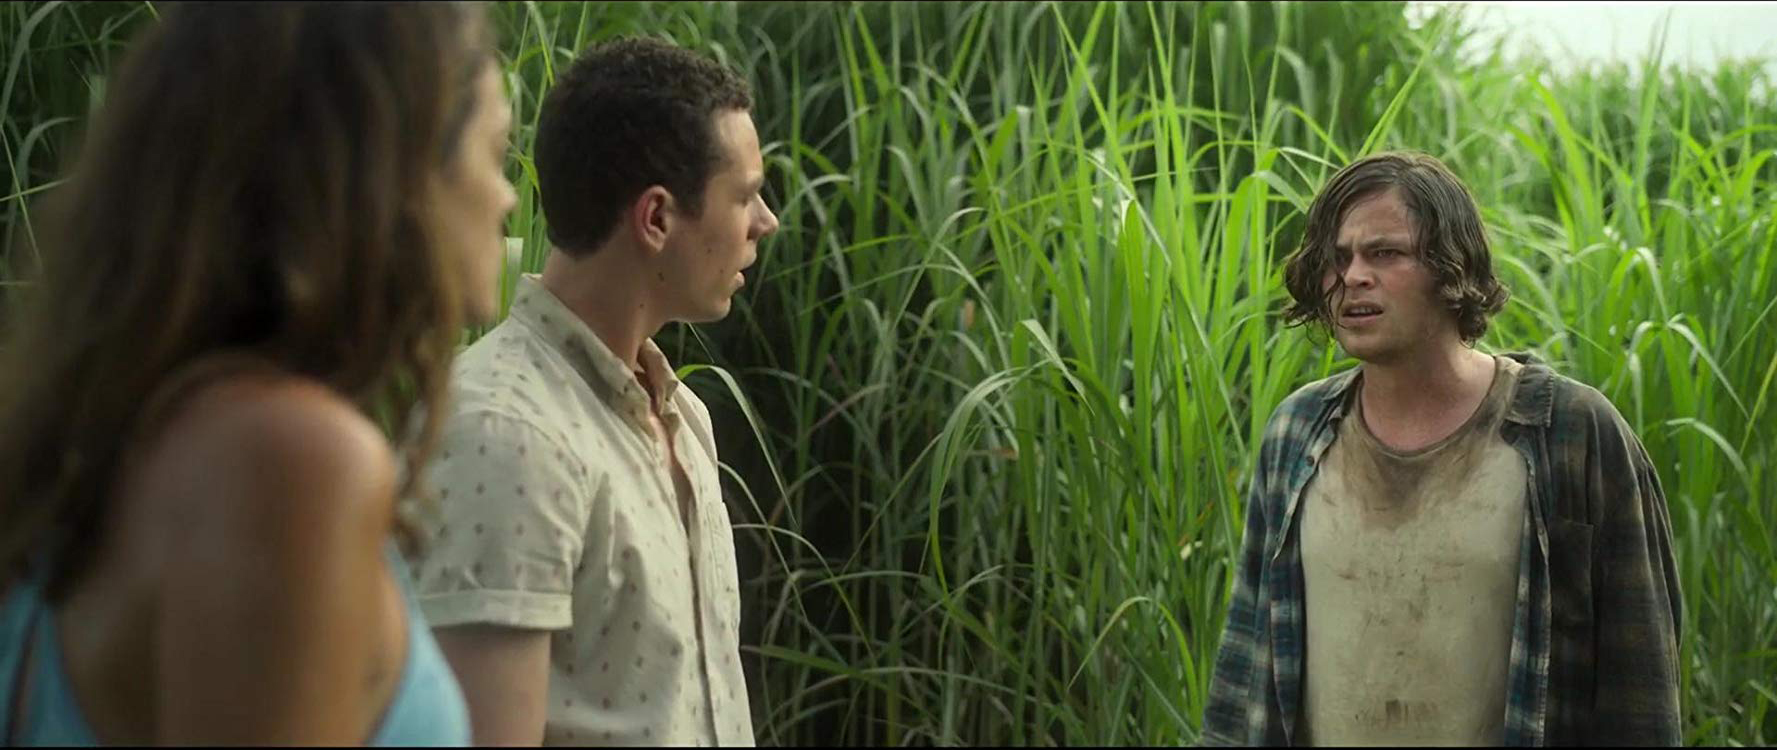 نقد فیلم In The Tall Grass